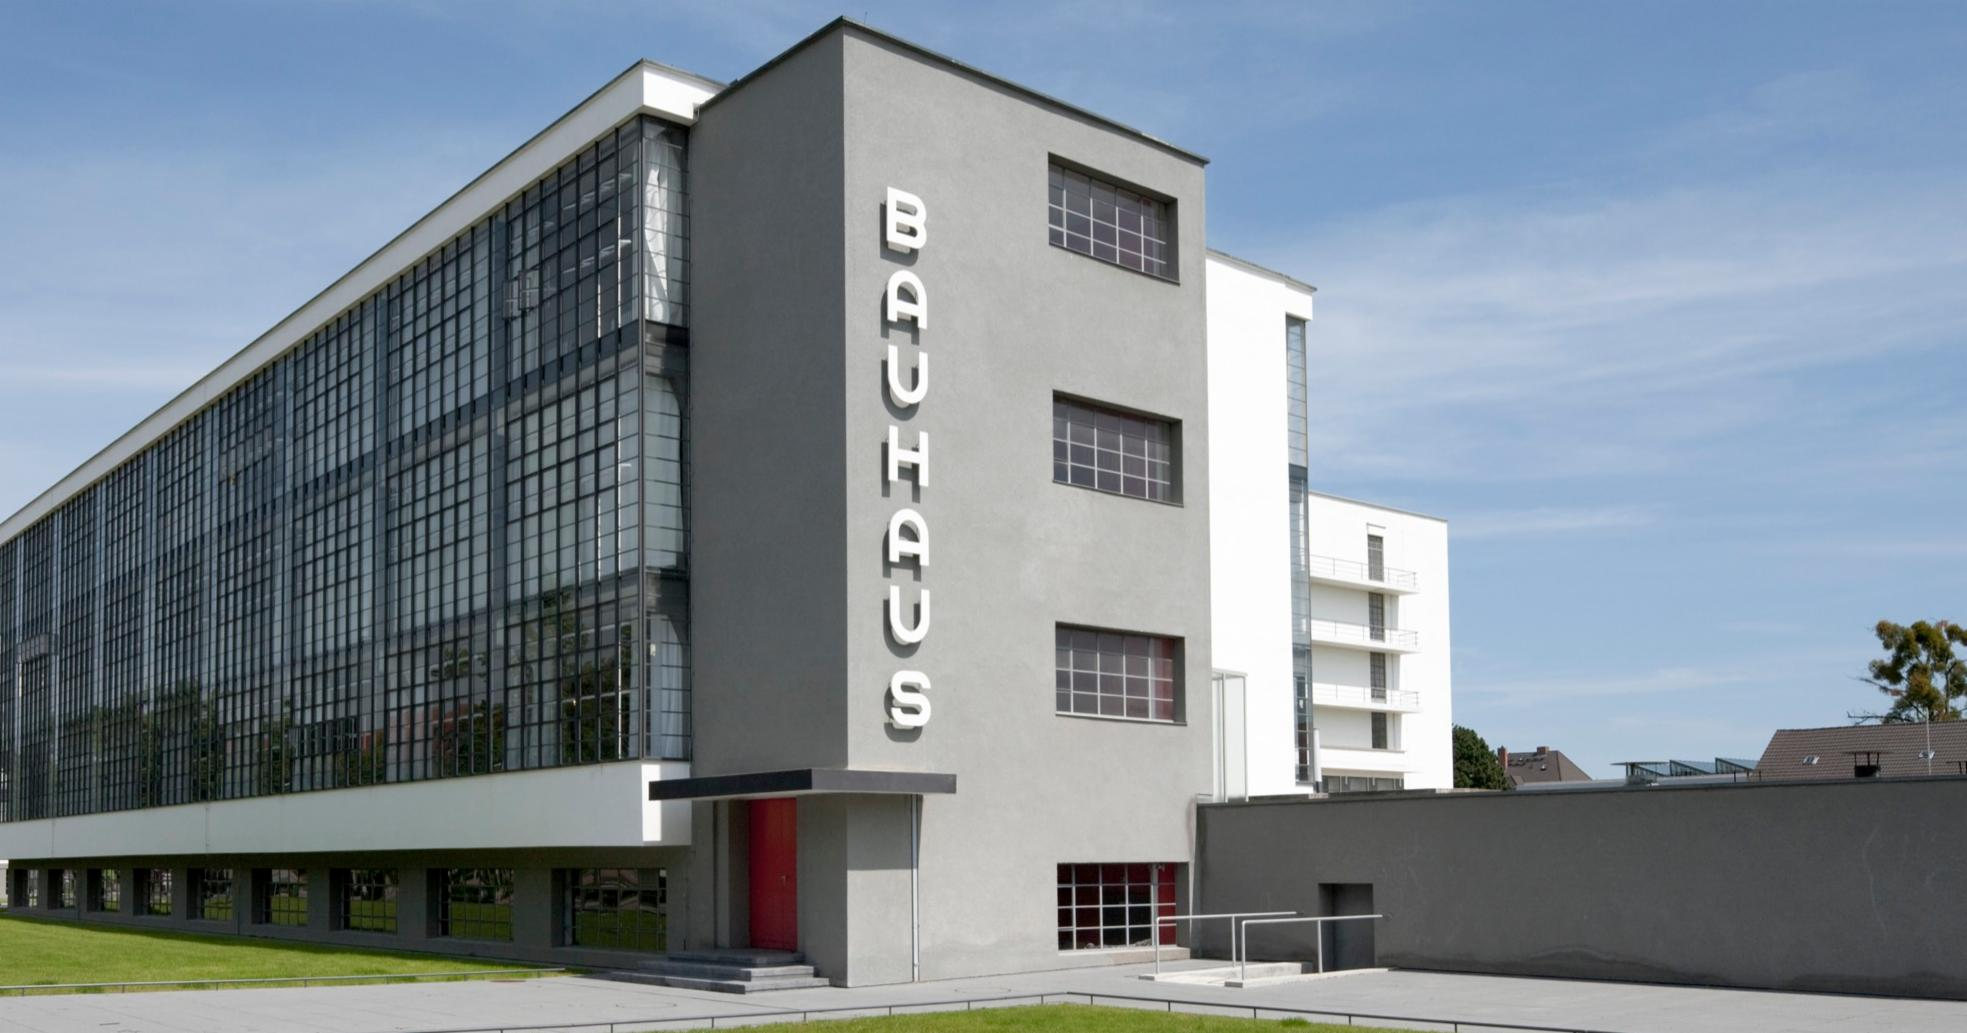 4dcf47d438ea 8 Iconic Bauhaus Sites to Visit for Its 100th Anniversary - Artsy